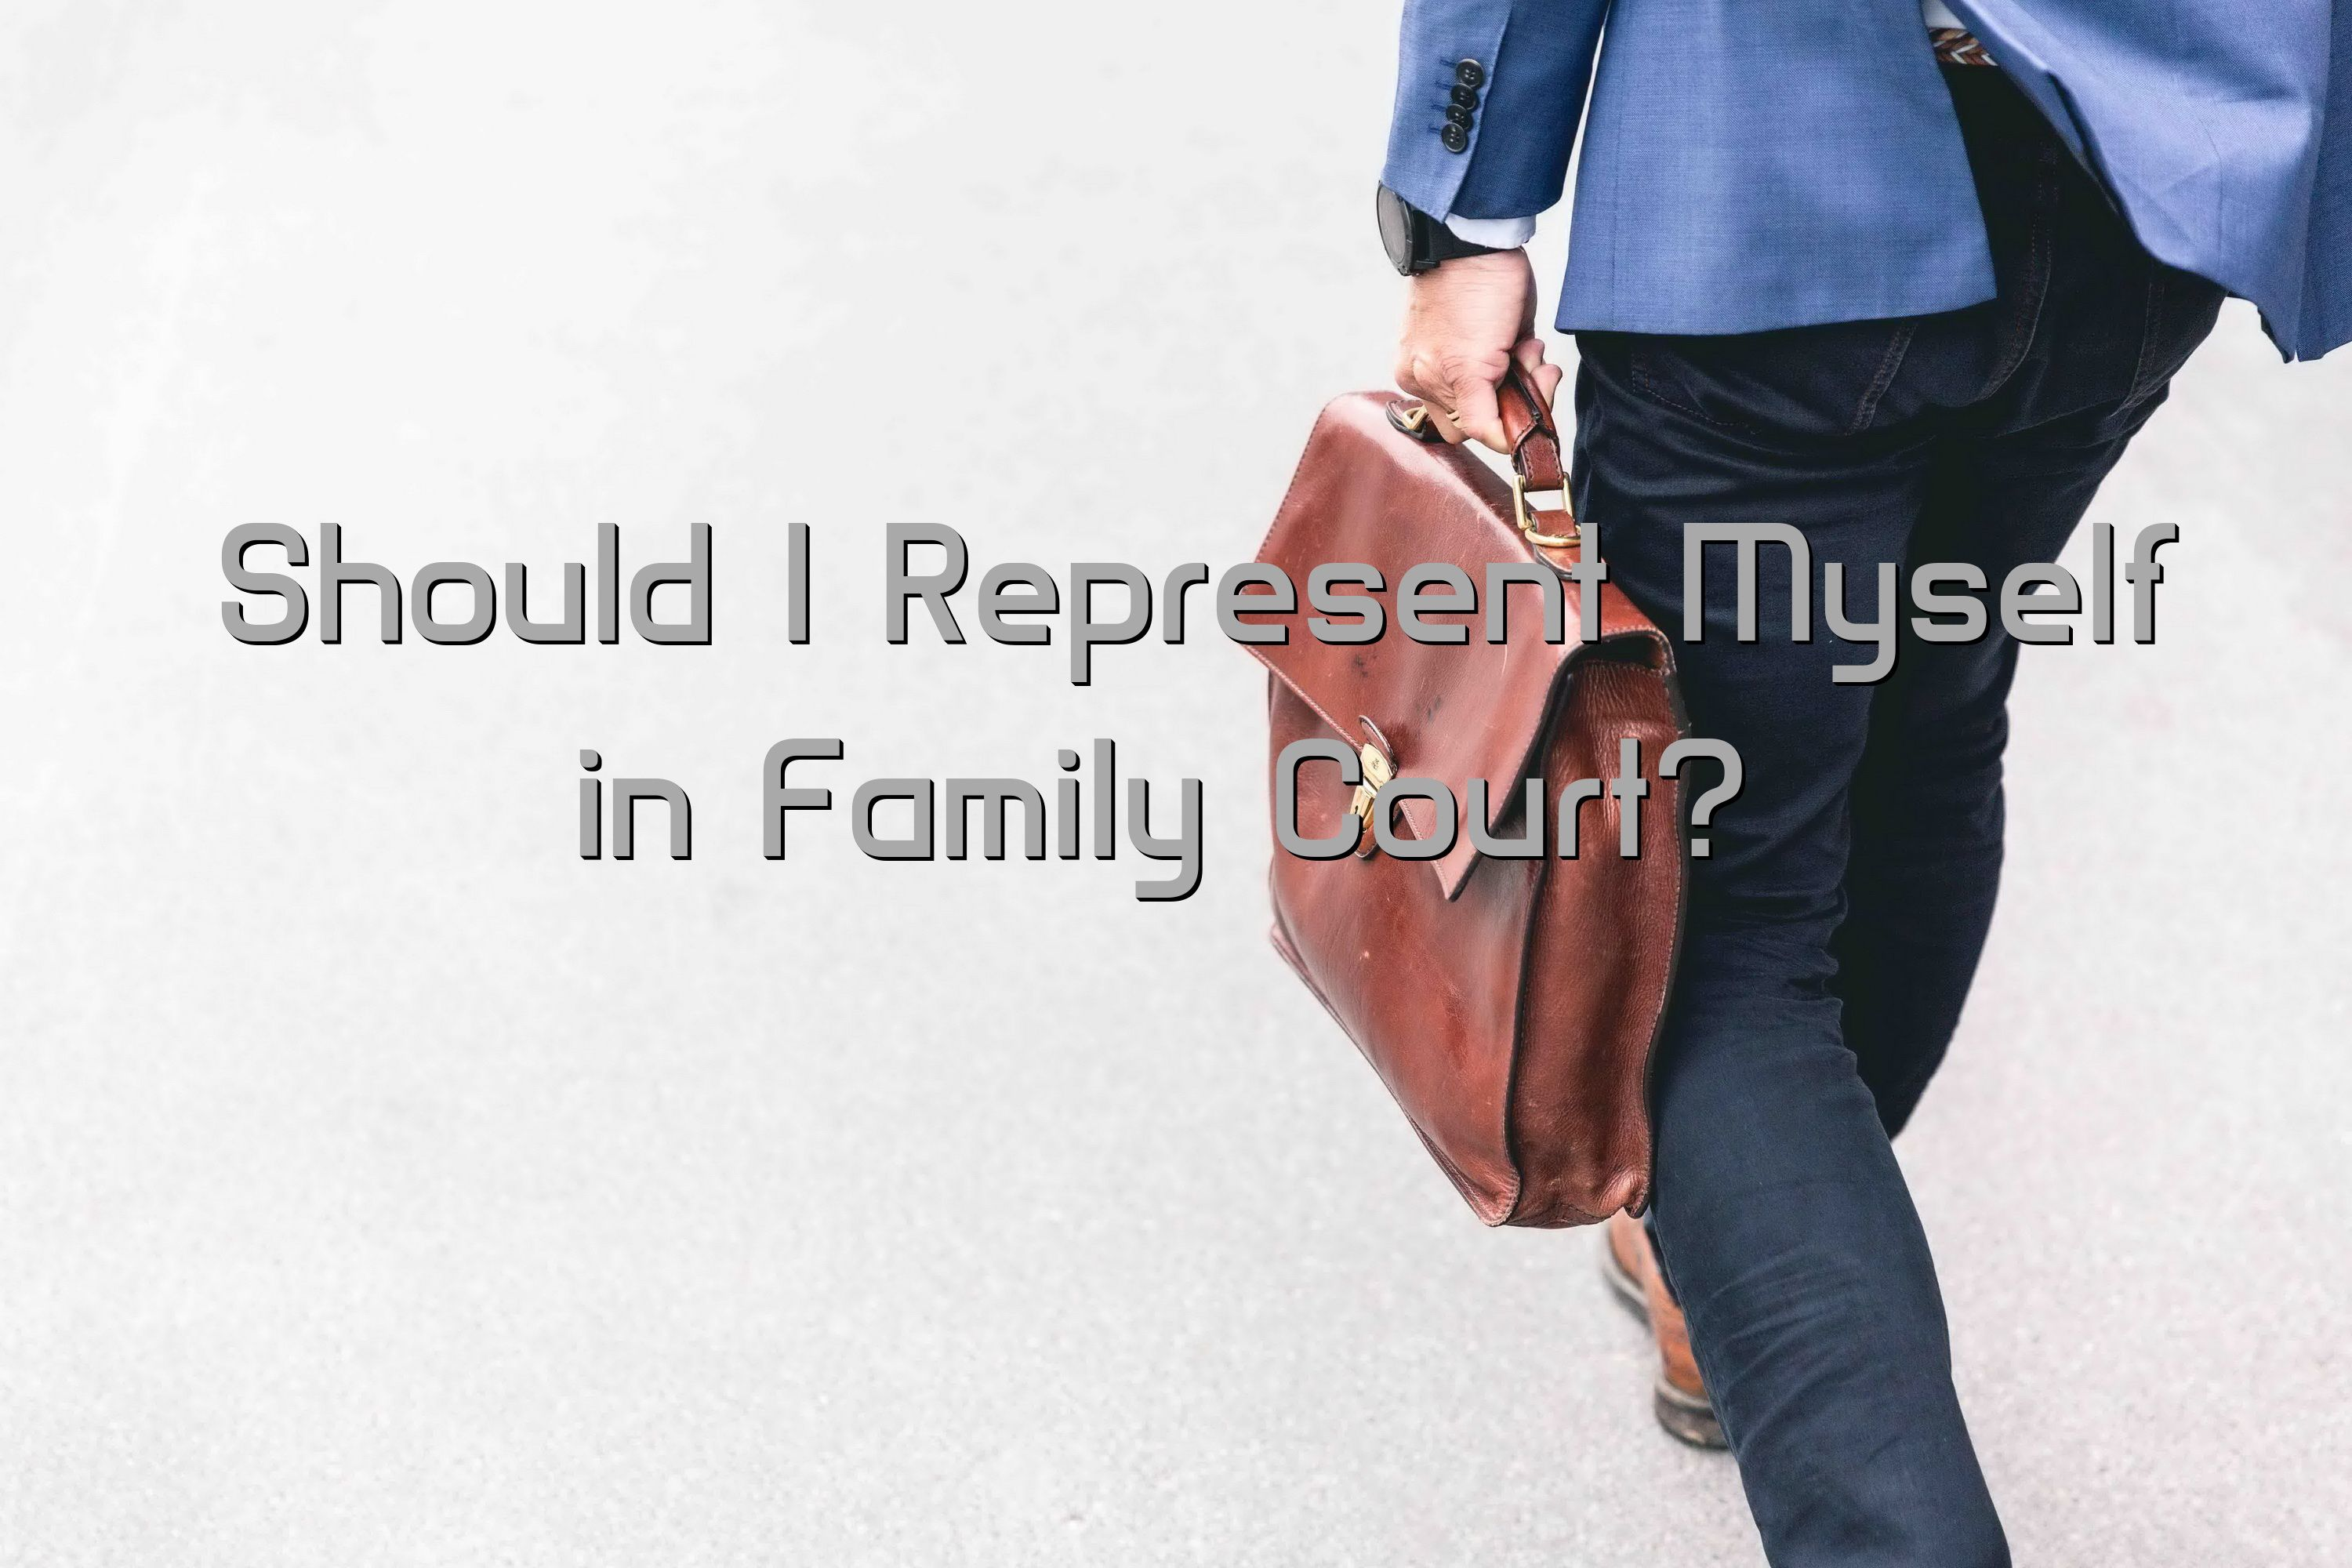 Should I Represent Myself in Family Court? https